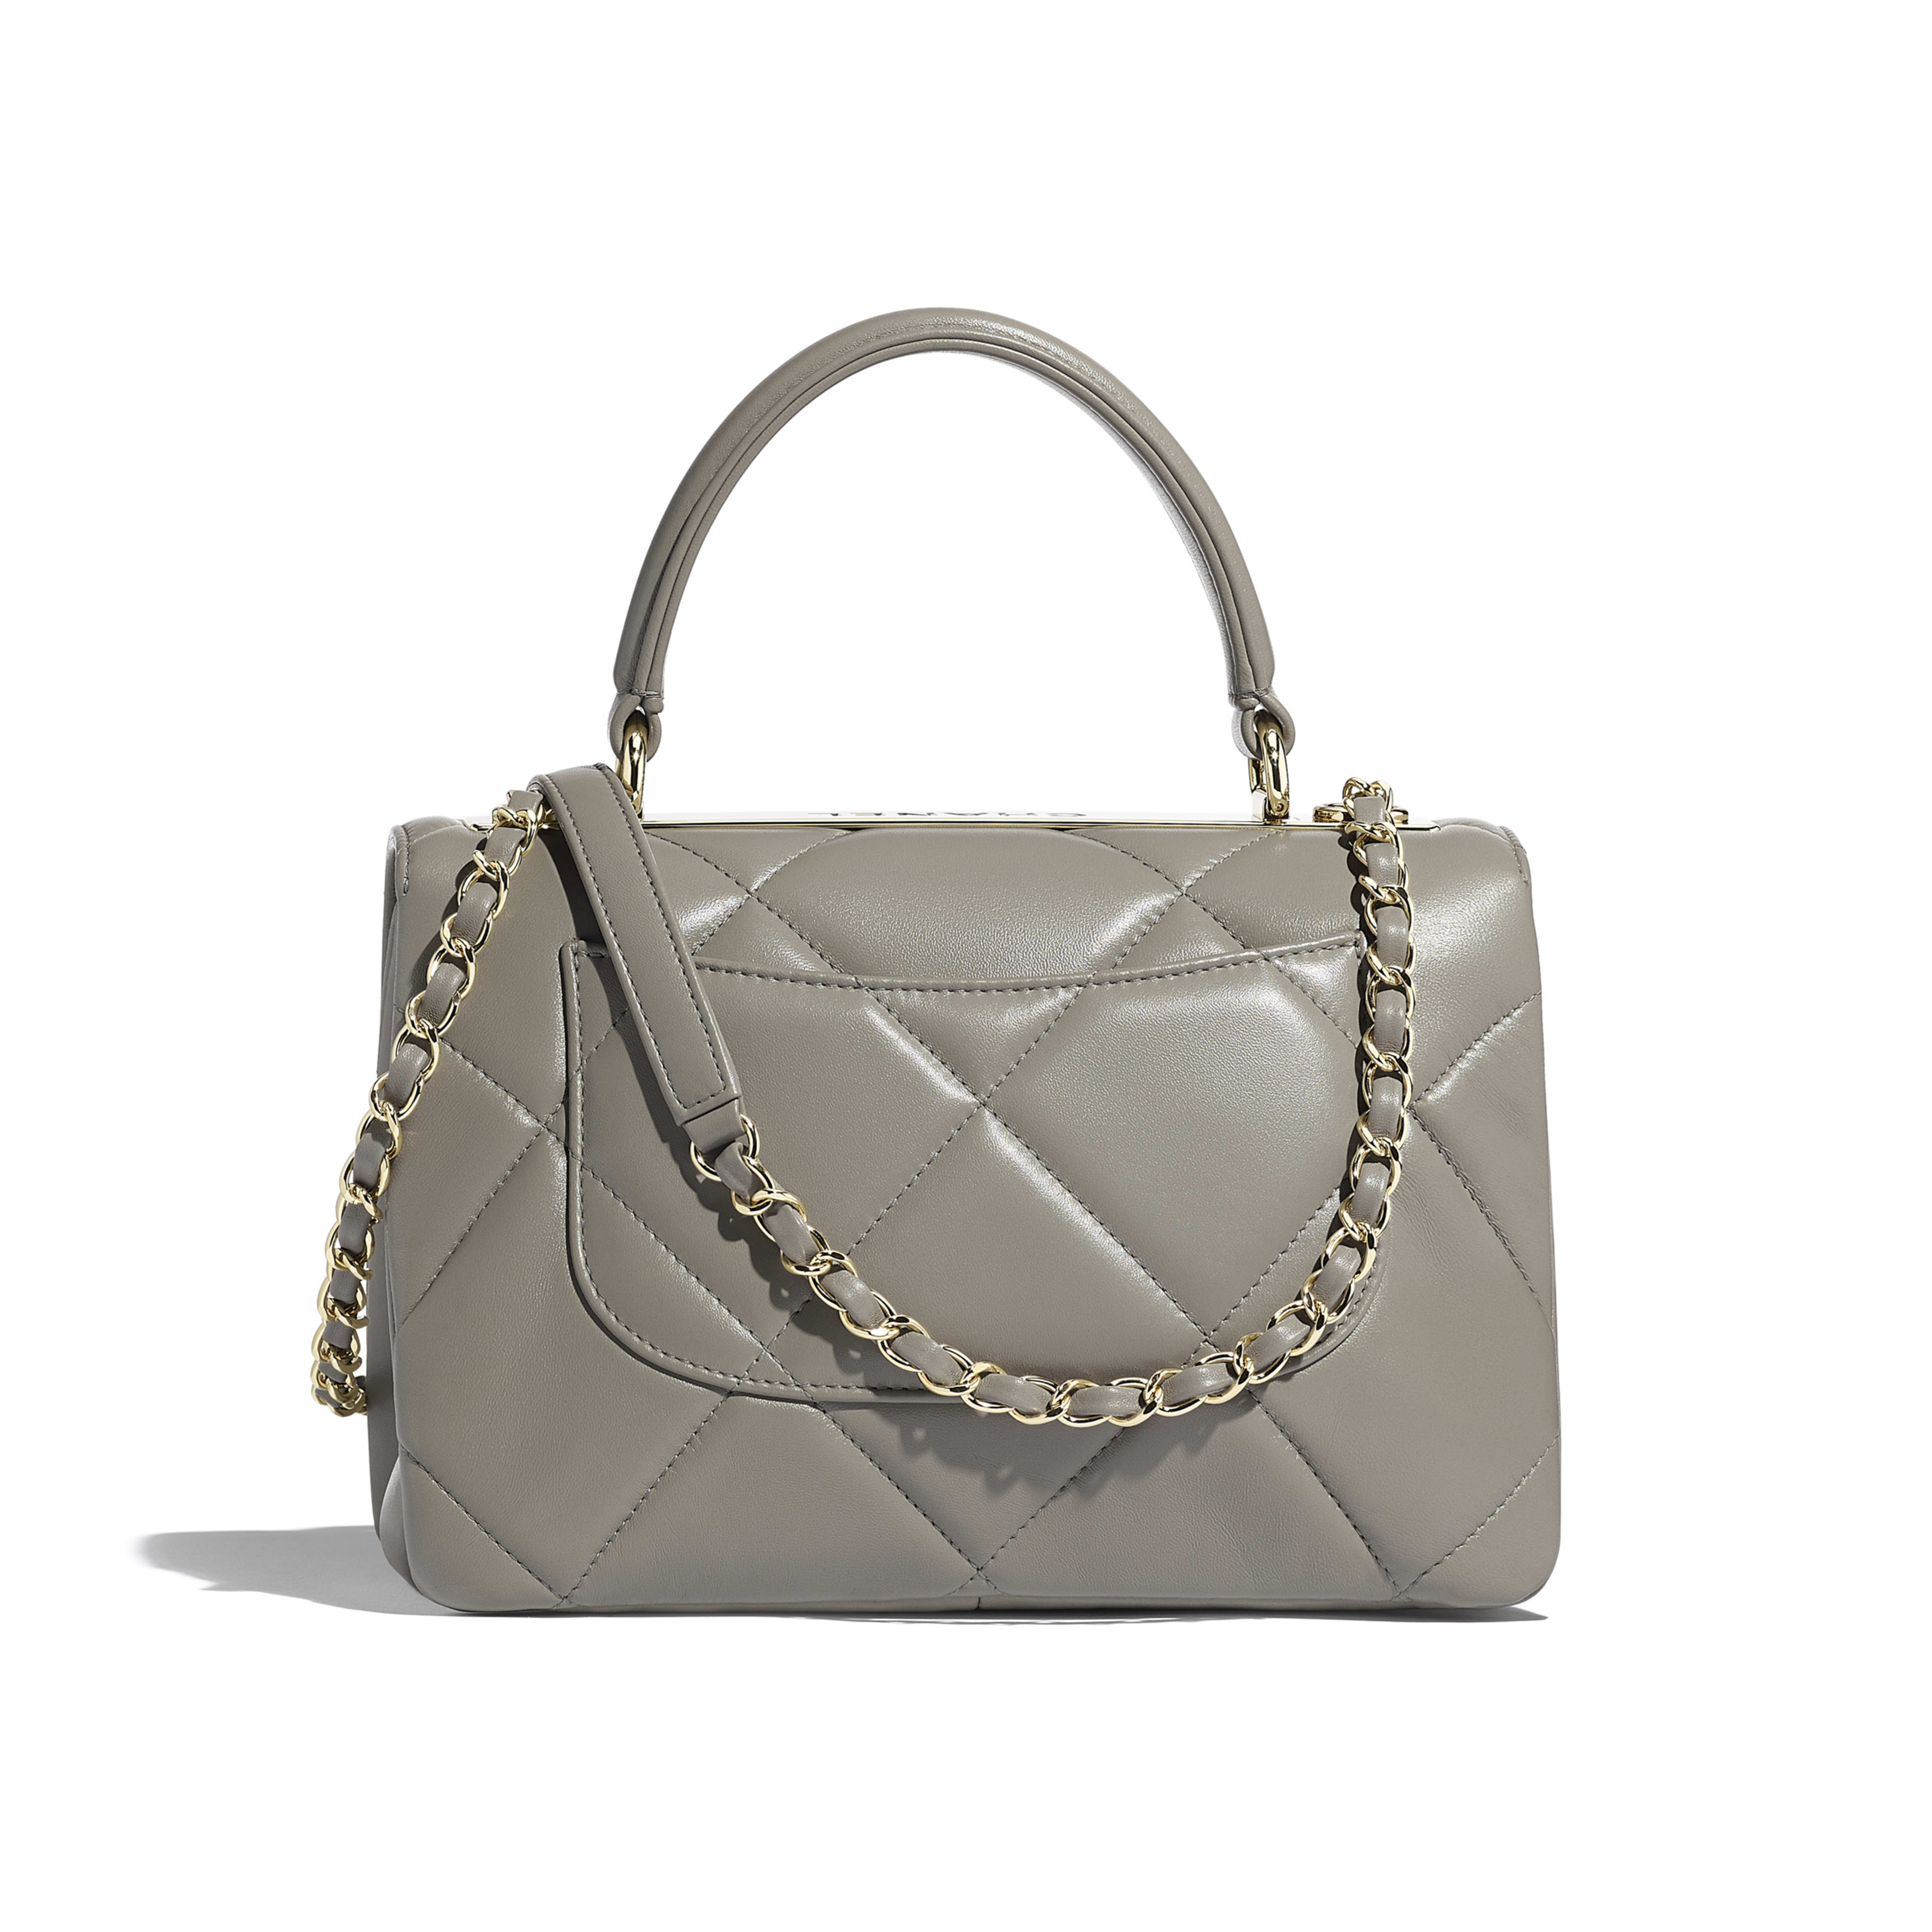 1caa33d082 Lambskin & Gold-Tone Metal Gray Small Flap Bag with Top Handle   CHANEL